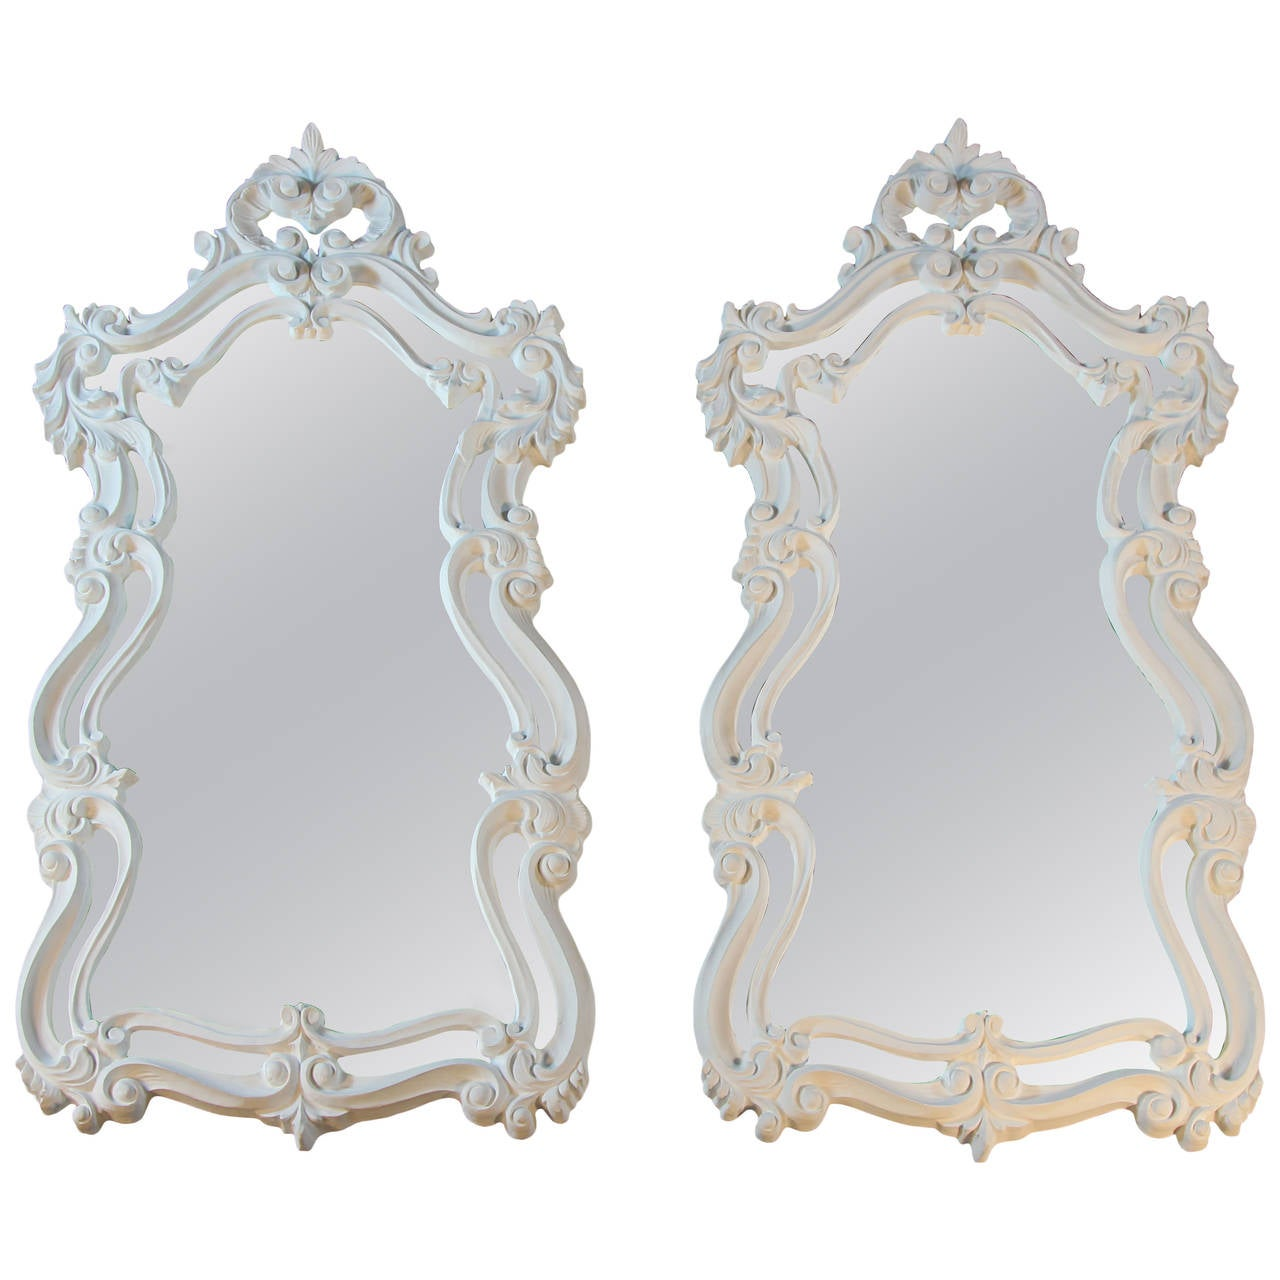 Rococo style mirror in white for sale at 1stdibs for White baroque style mirror